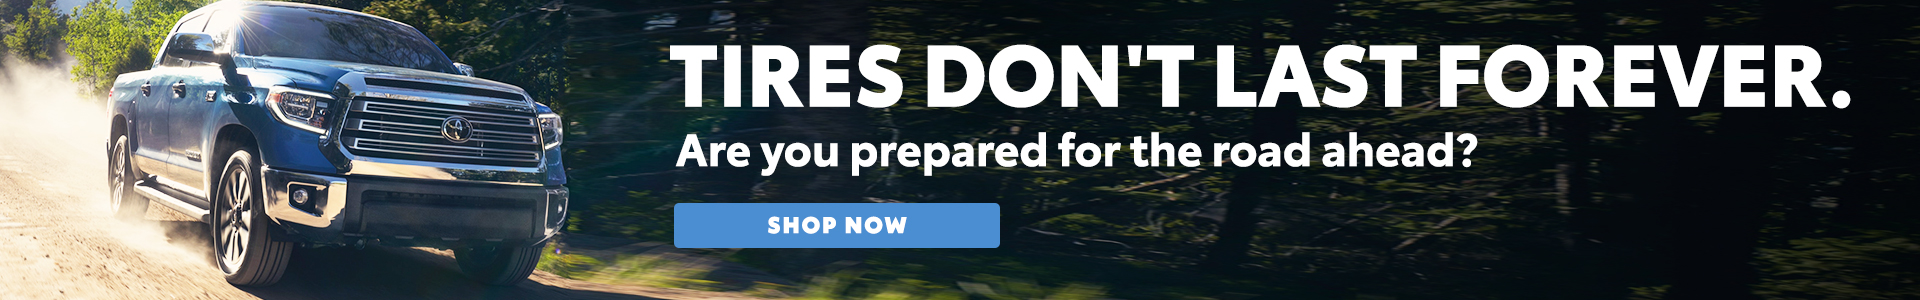 Tires don't last forever - Are you prepared for the road ahead? Shop Now